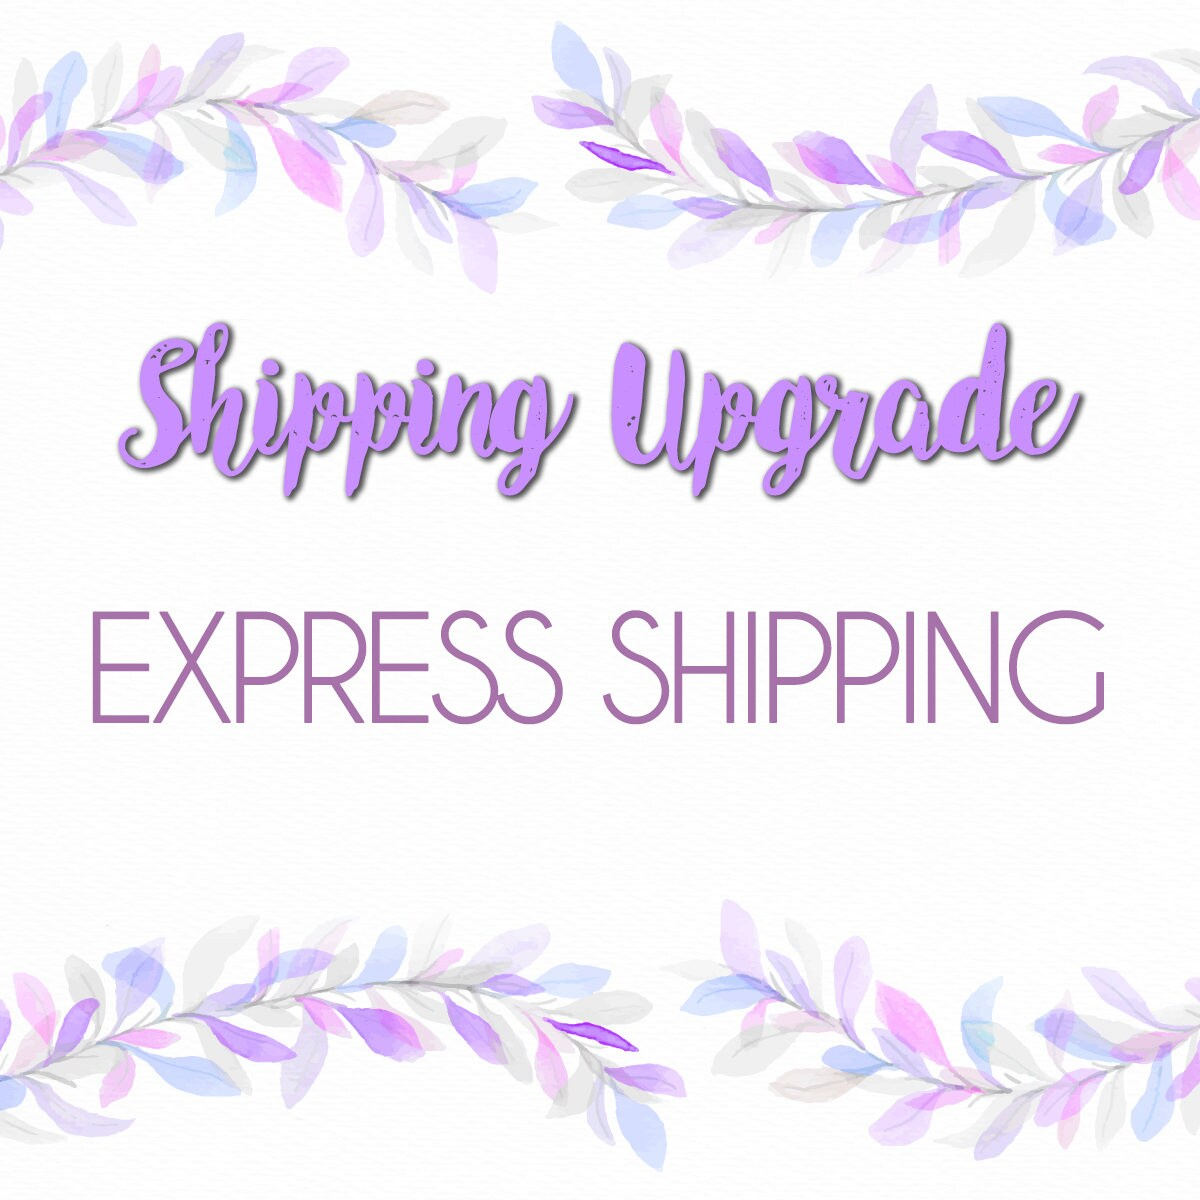 Shipping Upgrade to EXPRESS Via Fedex/UPS/Purolator | Etsy